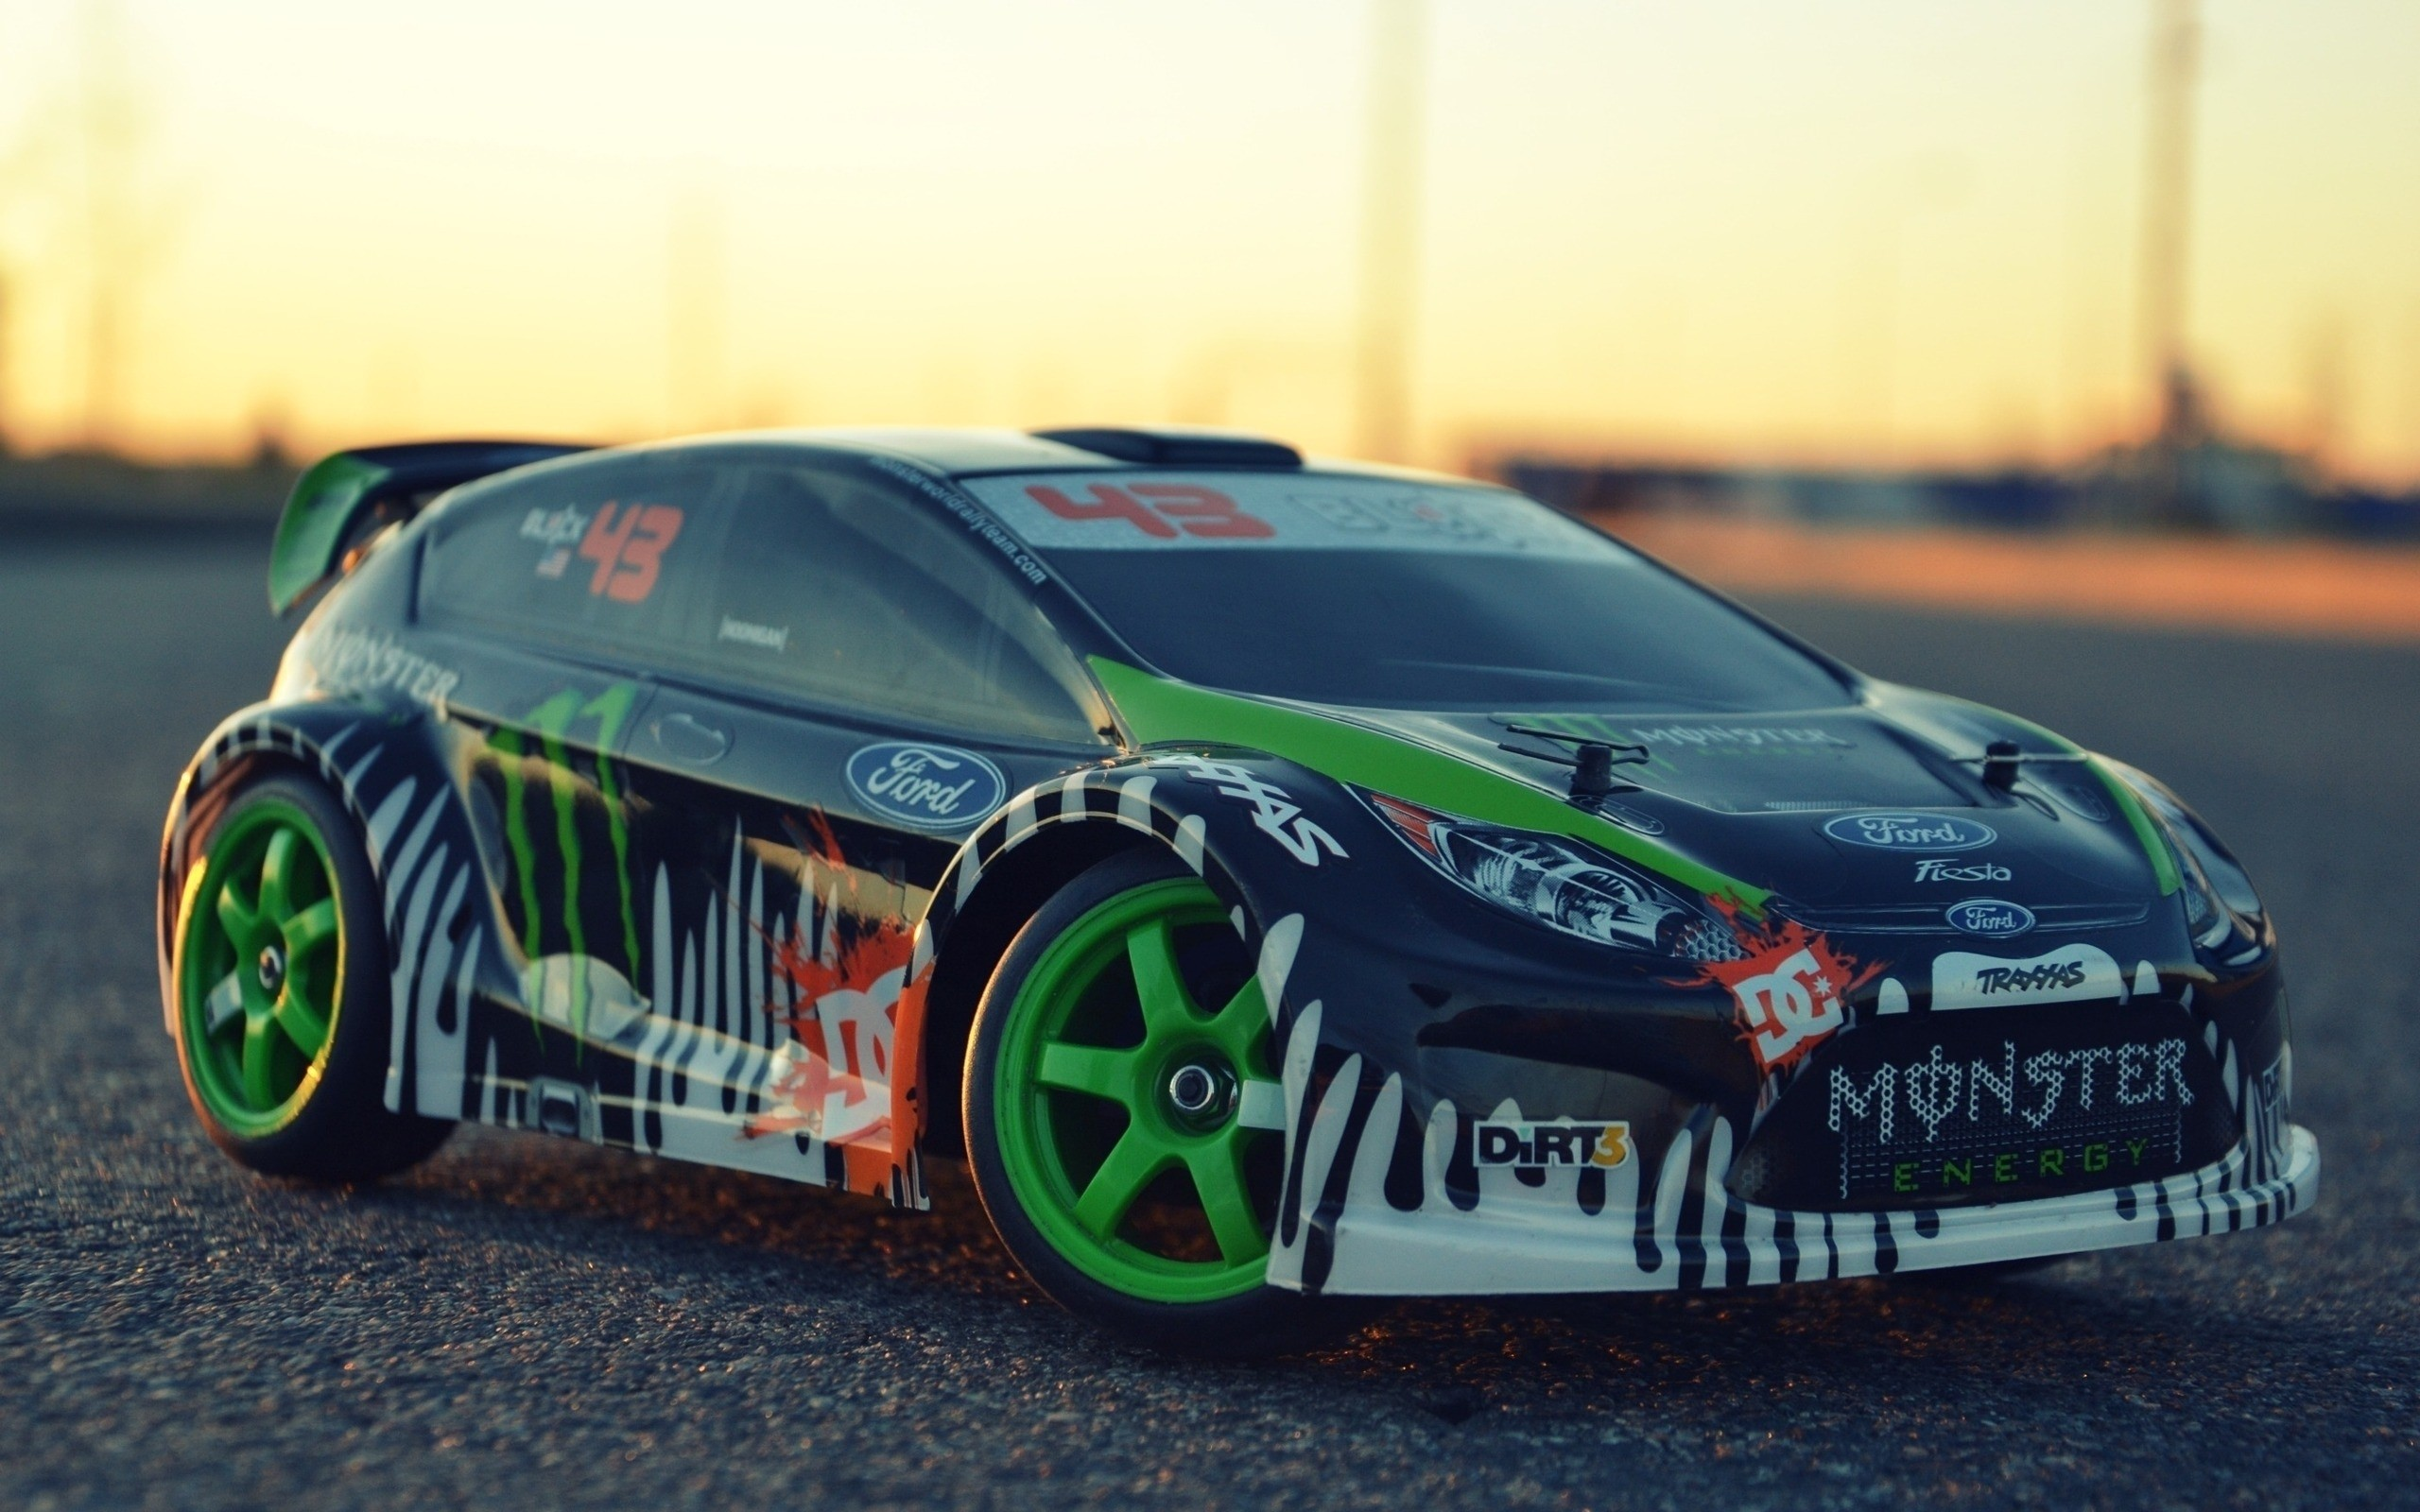 Res: 2560x1600, Ken Block Ford Fiesta Dc Shoes Toy Cars Traxxas Hd Wallpaper For Mobile  High Quality